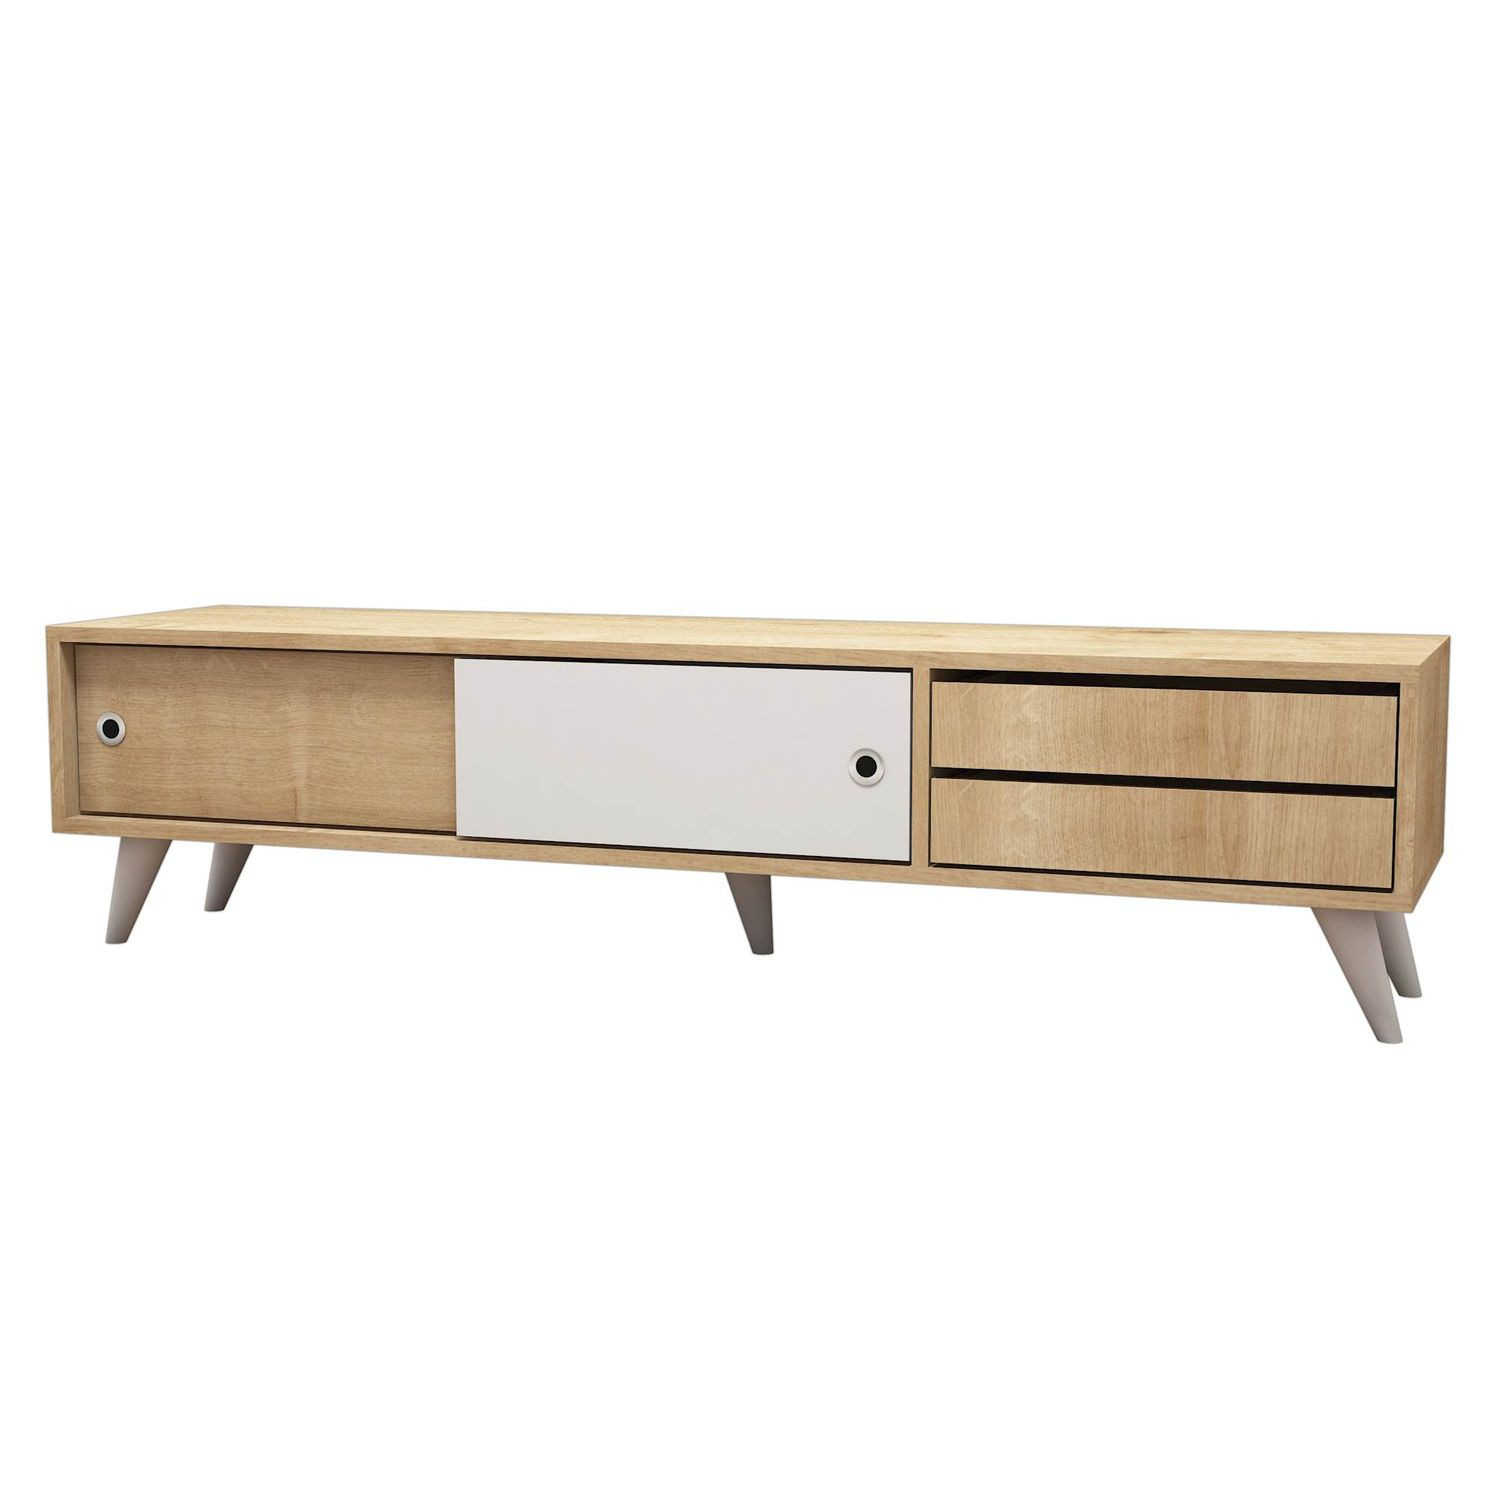 Meuble Tv Scandinave Eduardo 160 X 40 Cm Marron Et Blanc  # Meuble Tv Scandinave